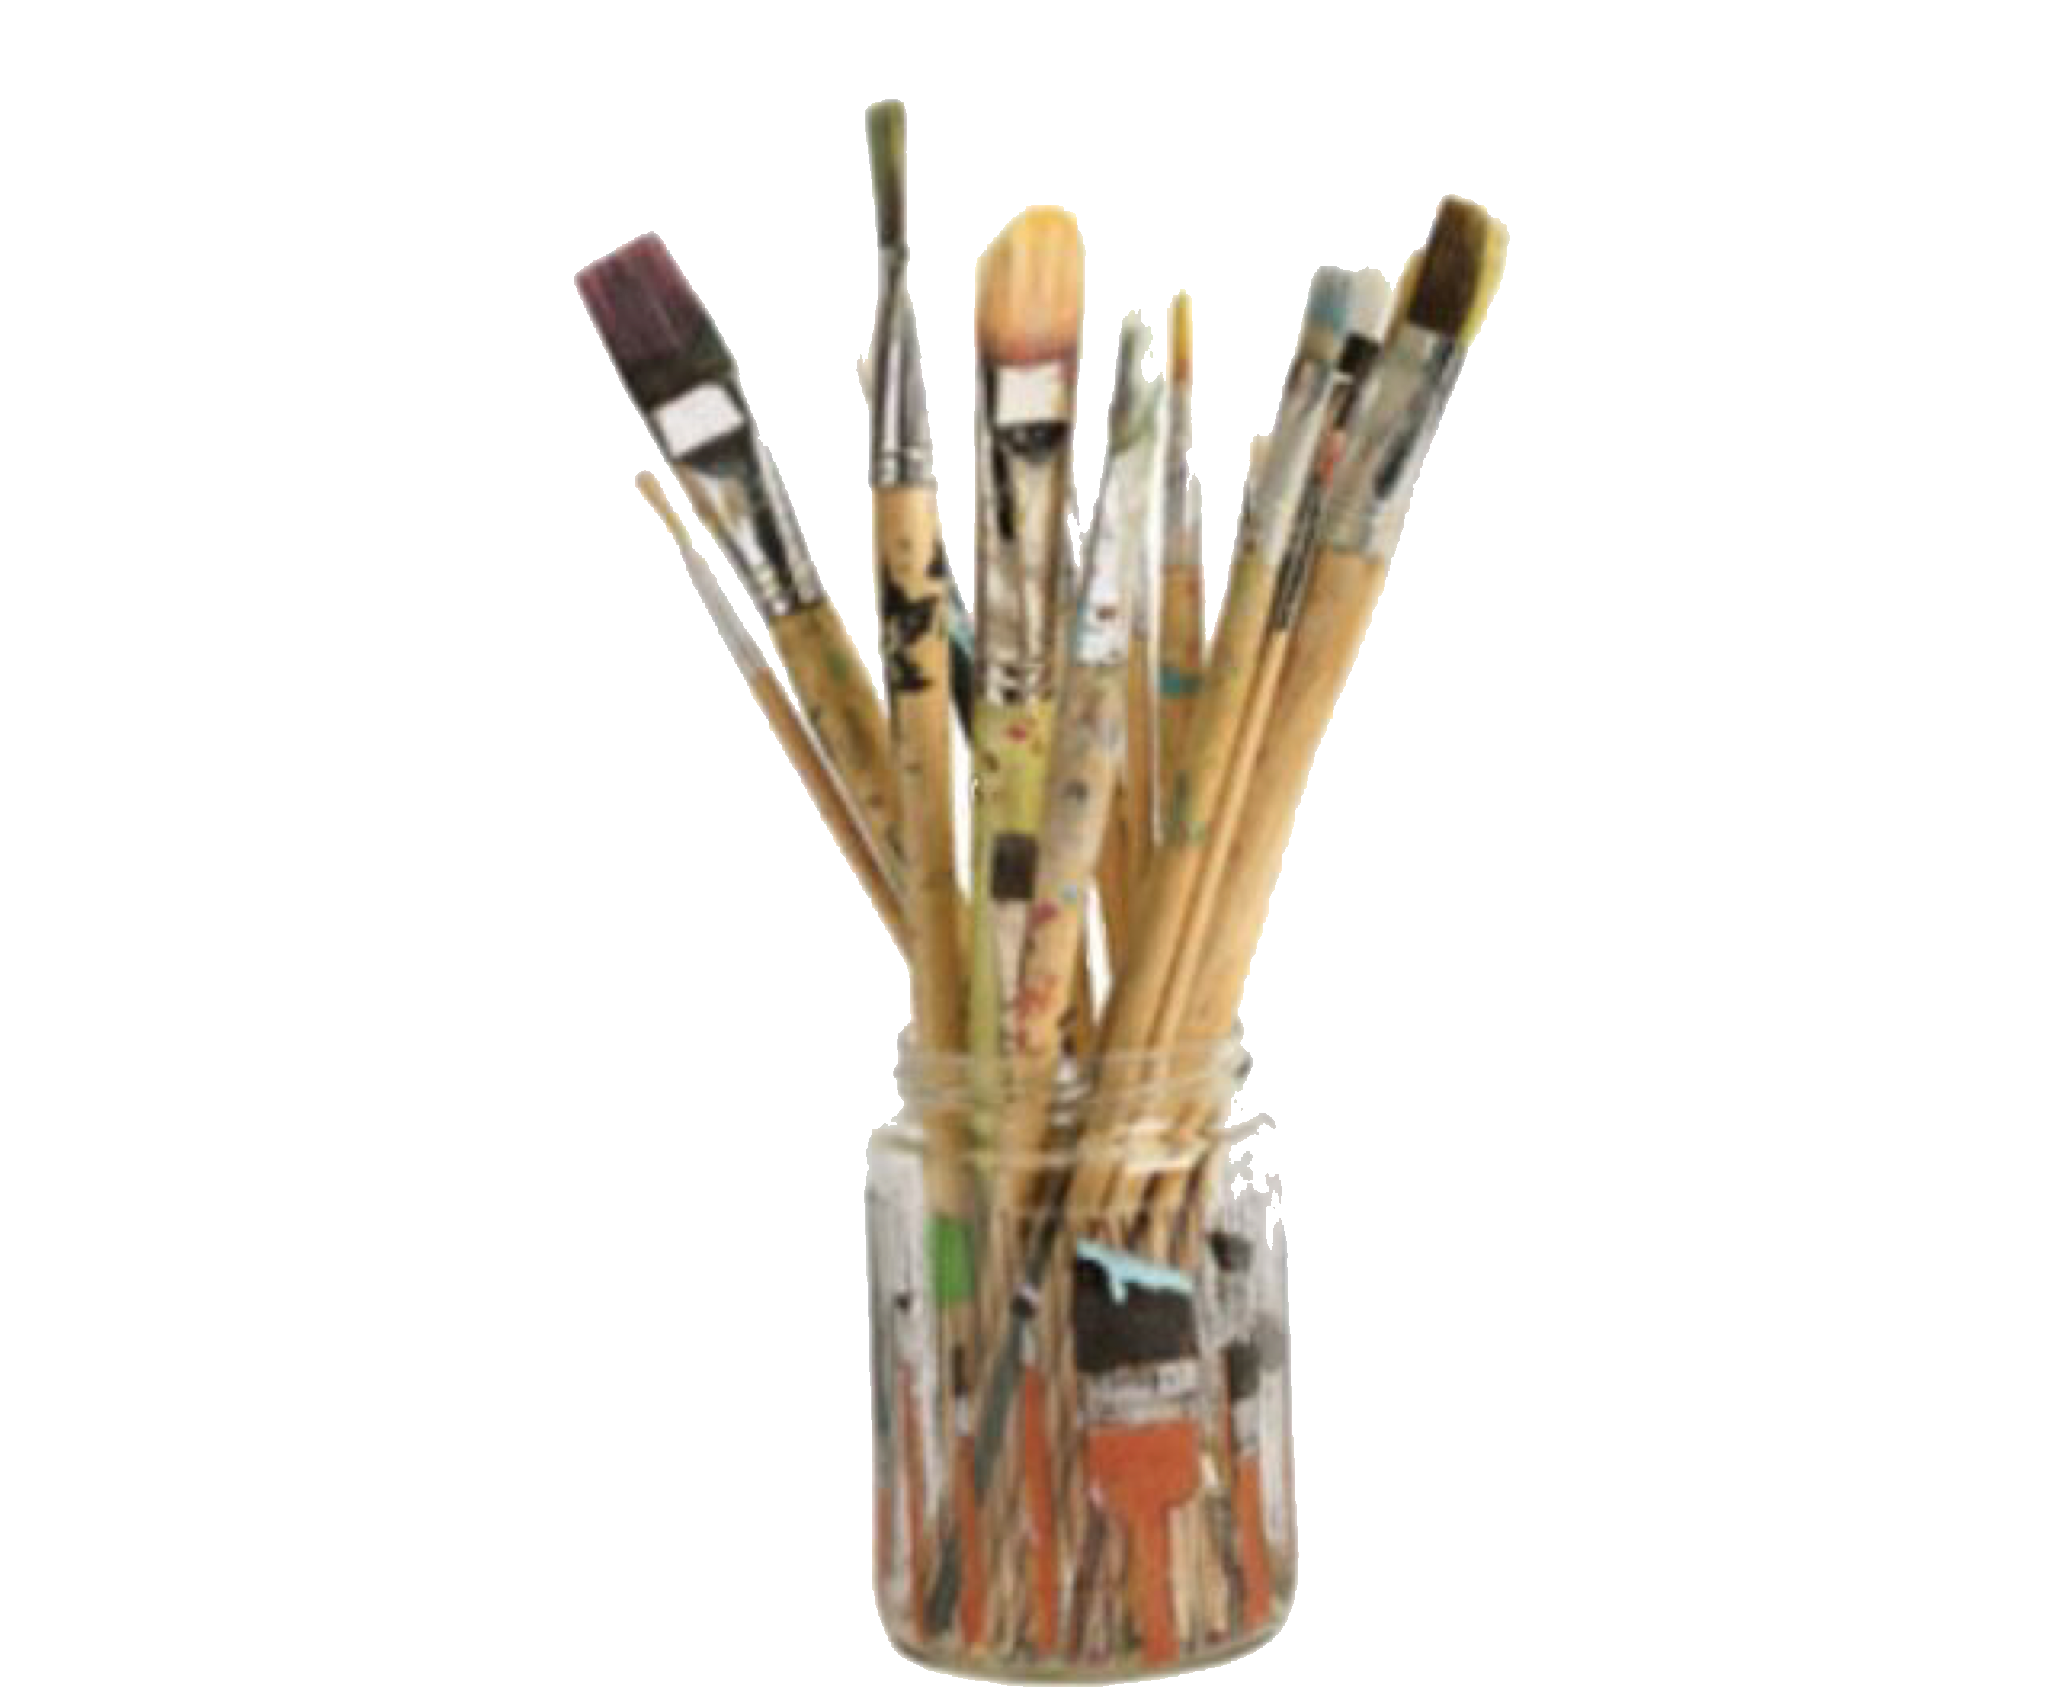 Pin By Sweetpxsin On Pngs Png Paint Brushes Overlays